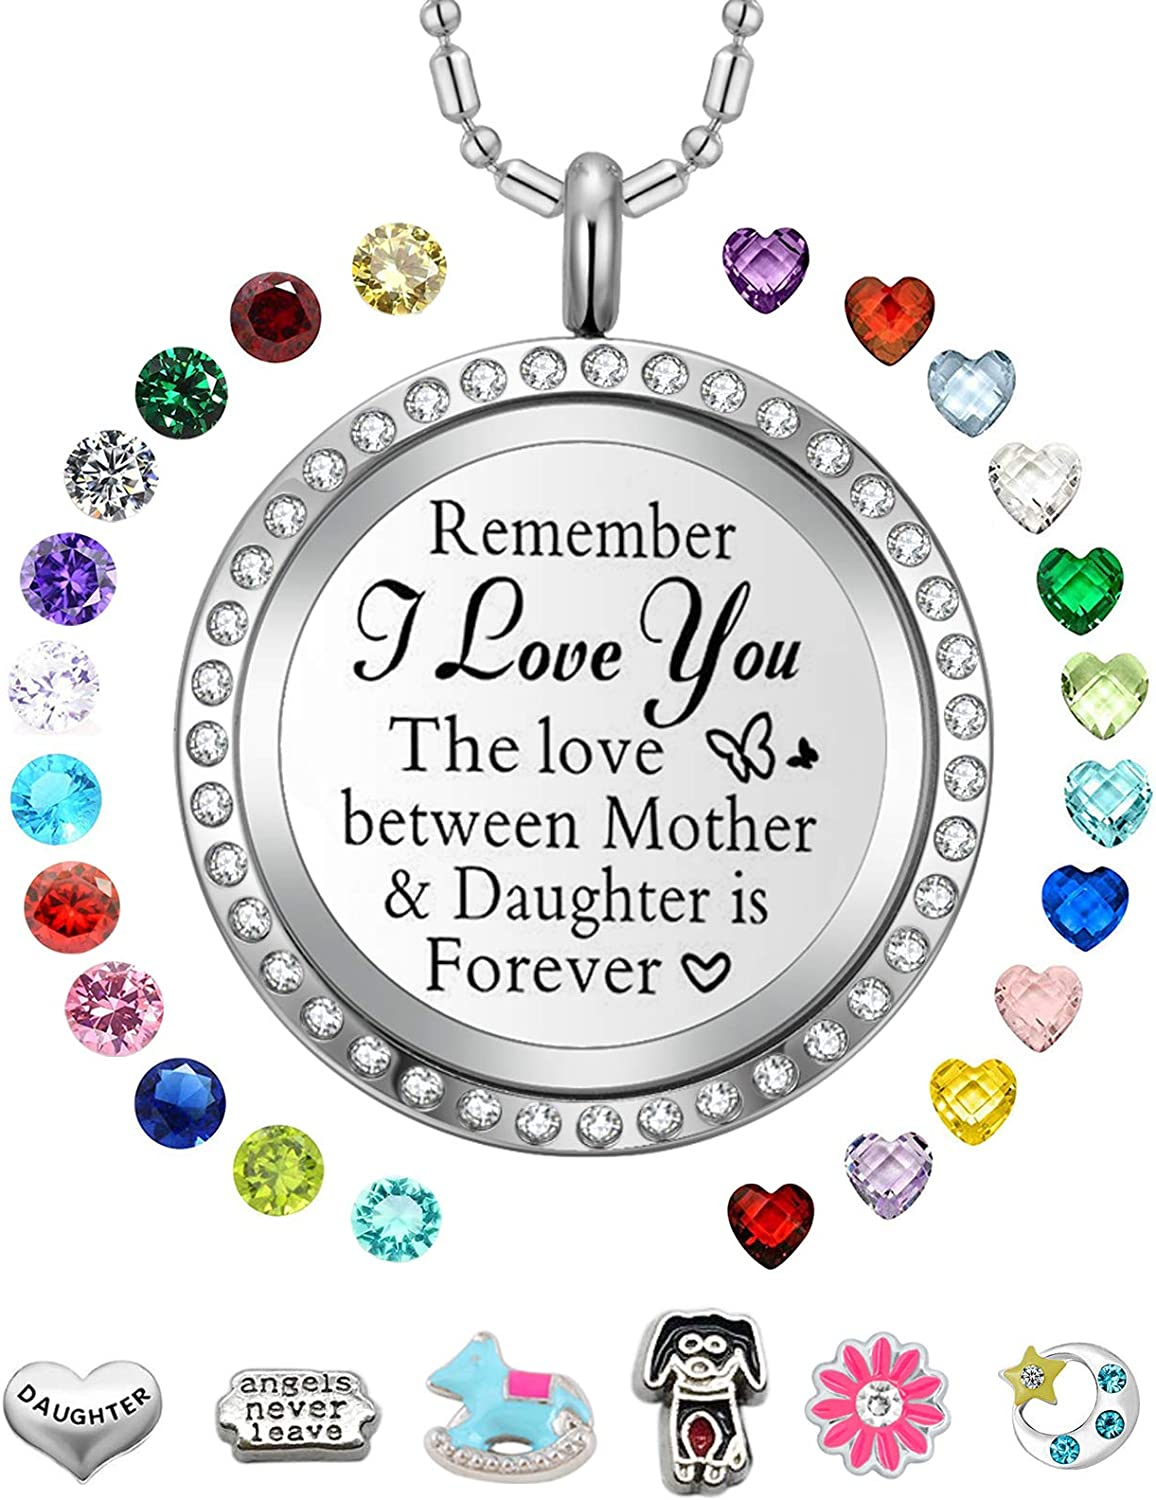 Max 51% OFF AZNECK Best Inspirational Special price for a limited time Floating Locket Gifts Necklace Charms